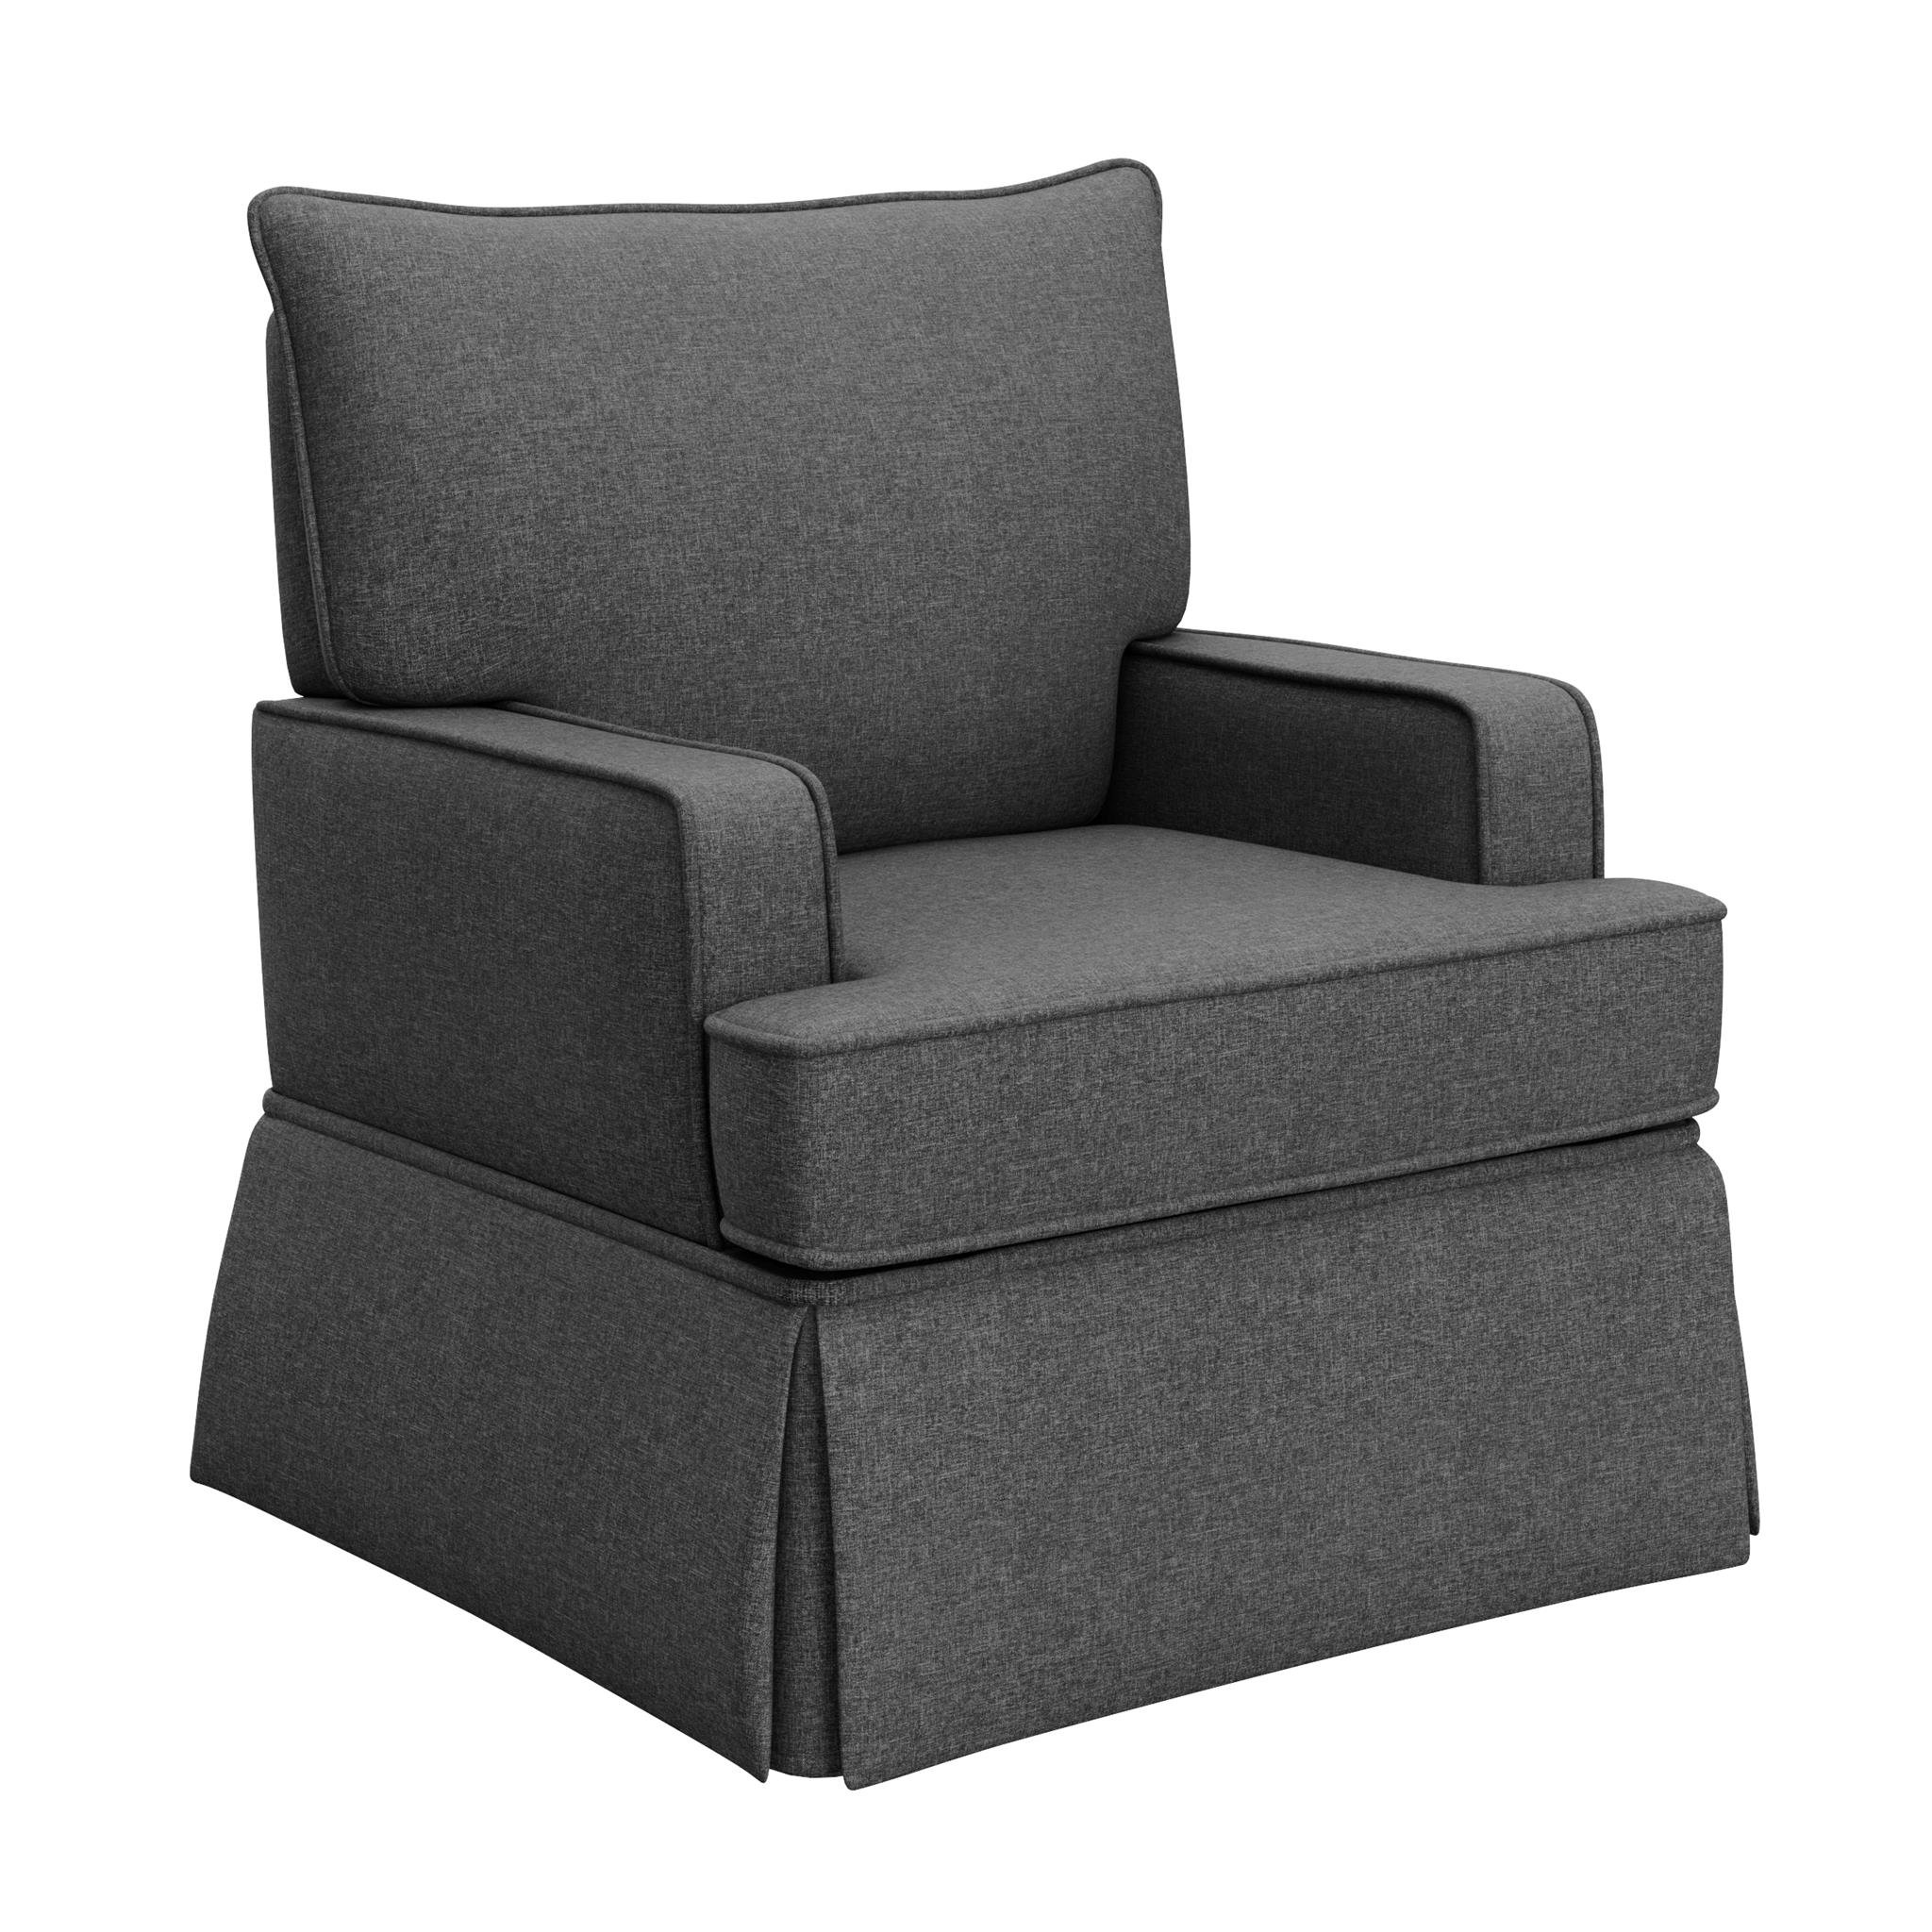 Storkcraft Davenport Upholstered Swivel Glider, Shadow Cleanable Upholstered Comfort Rocking Nursery Swivel Chair by Stork Craft